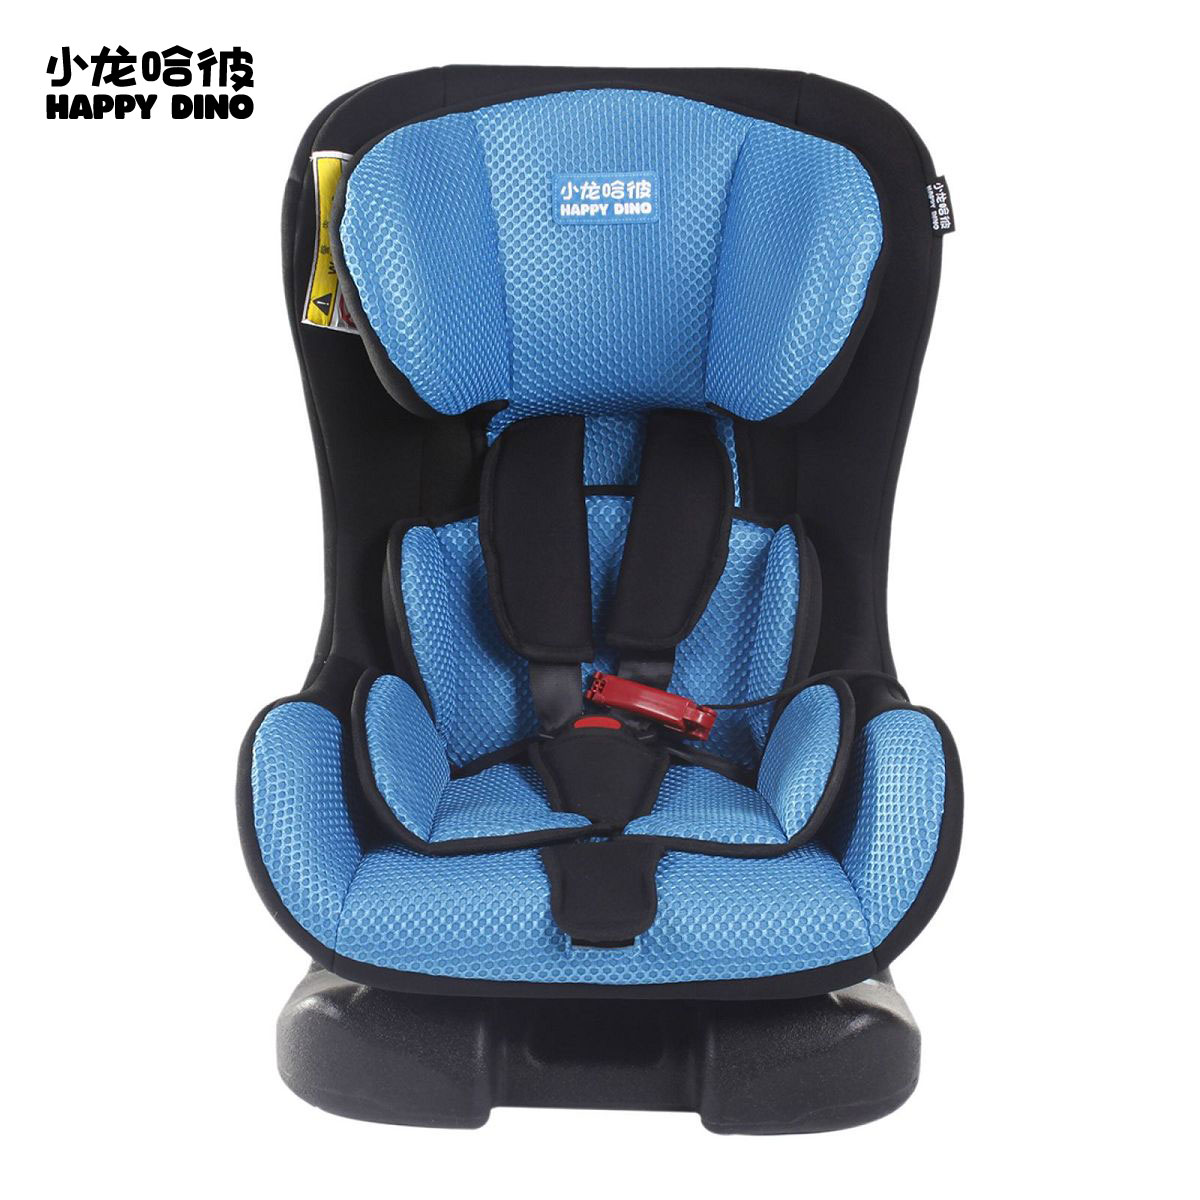 Little dragon, he child car safety seat LCS600 -w two-way installation 0 to 4 years old(China (Mainland))